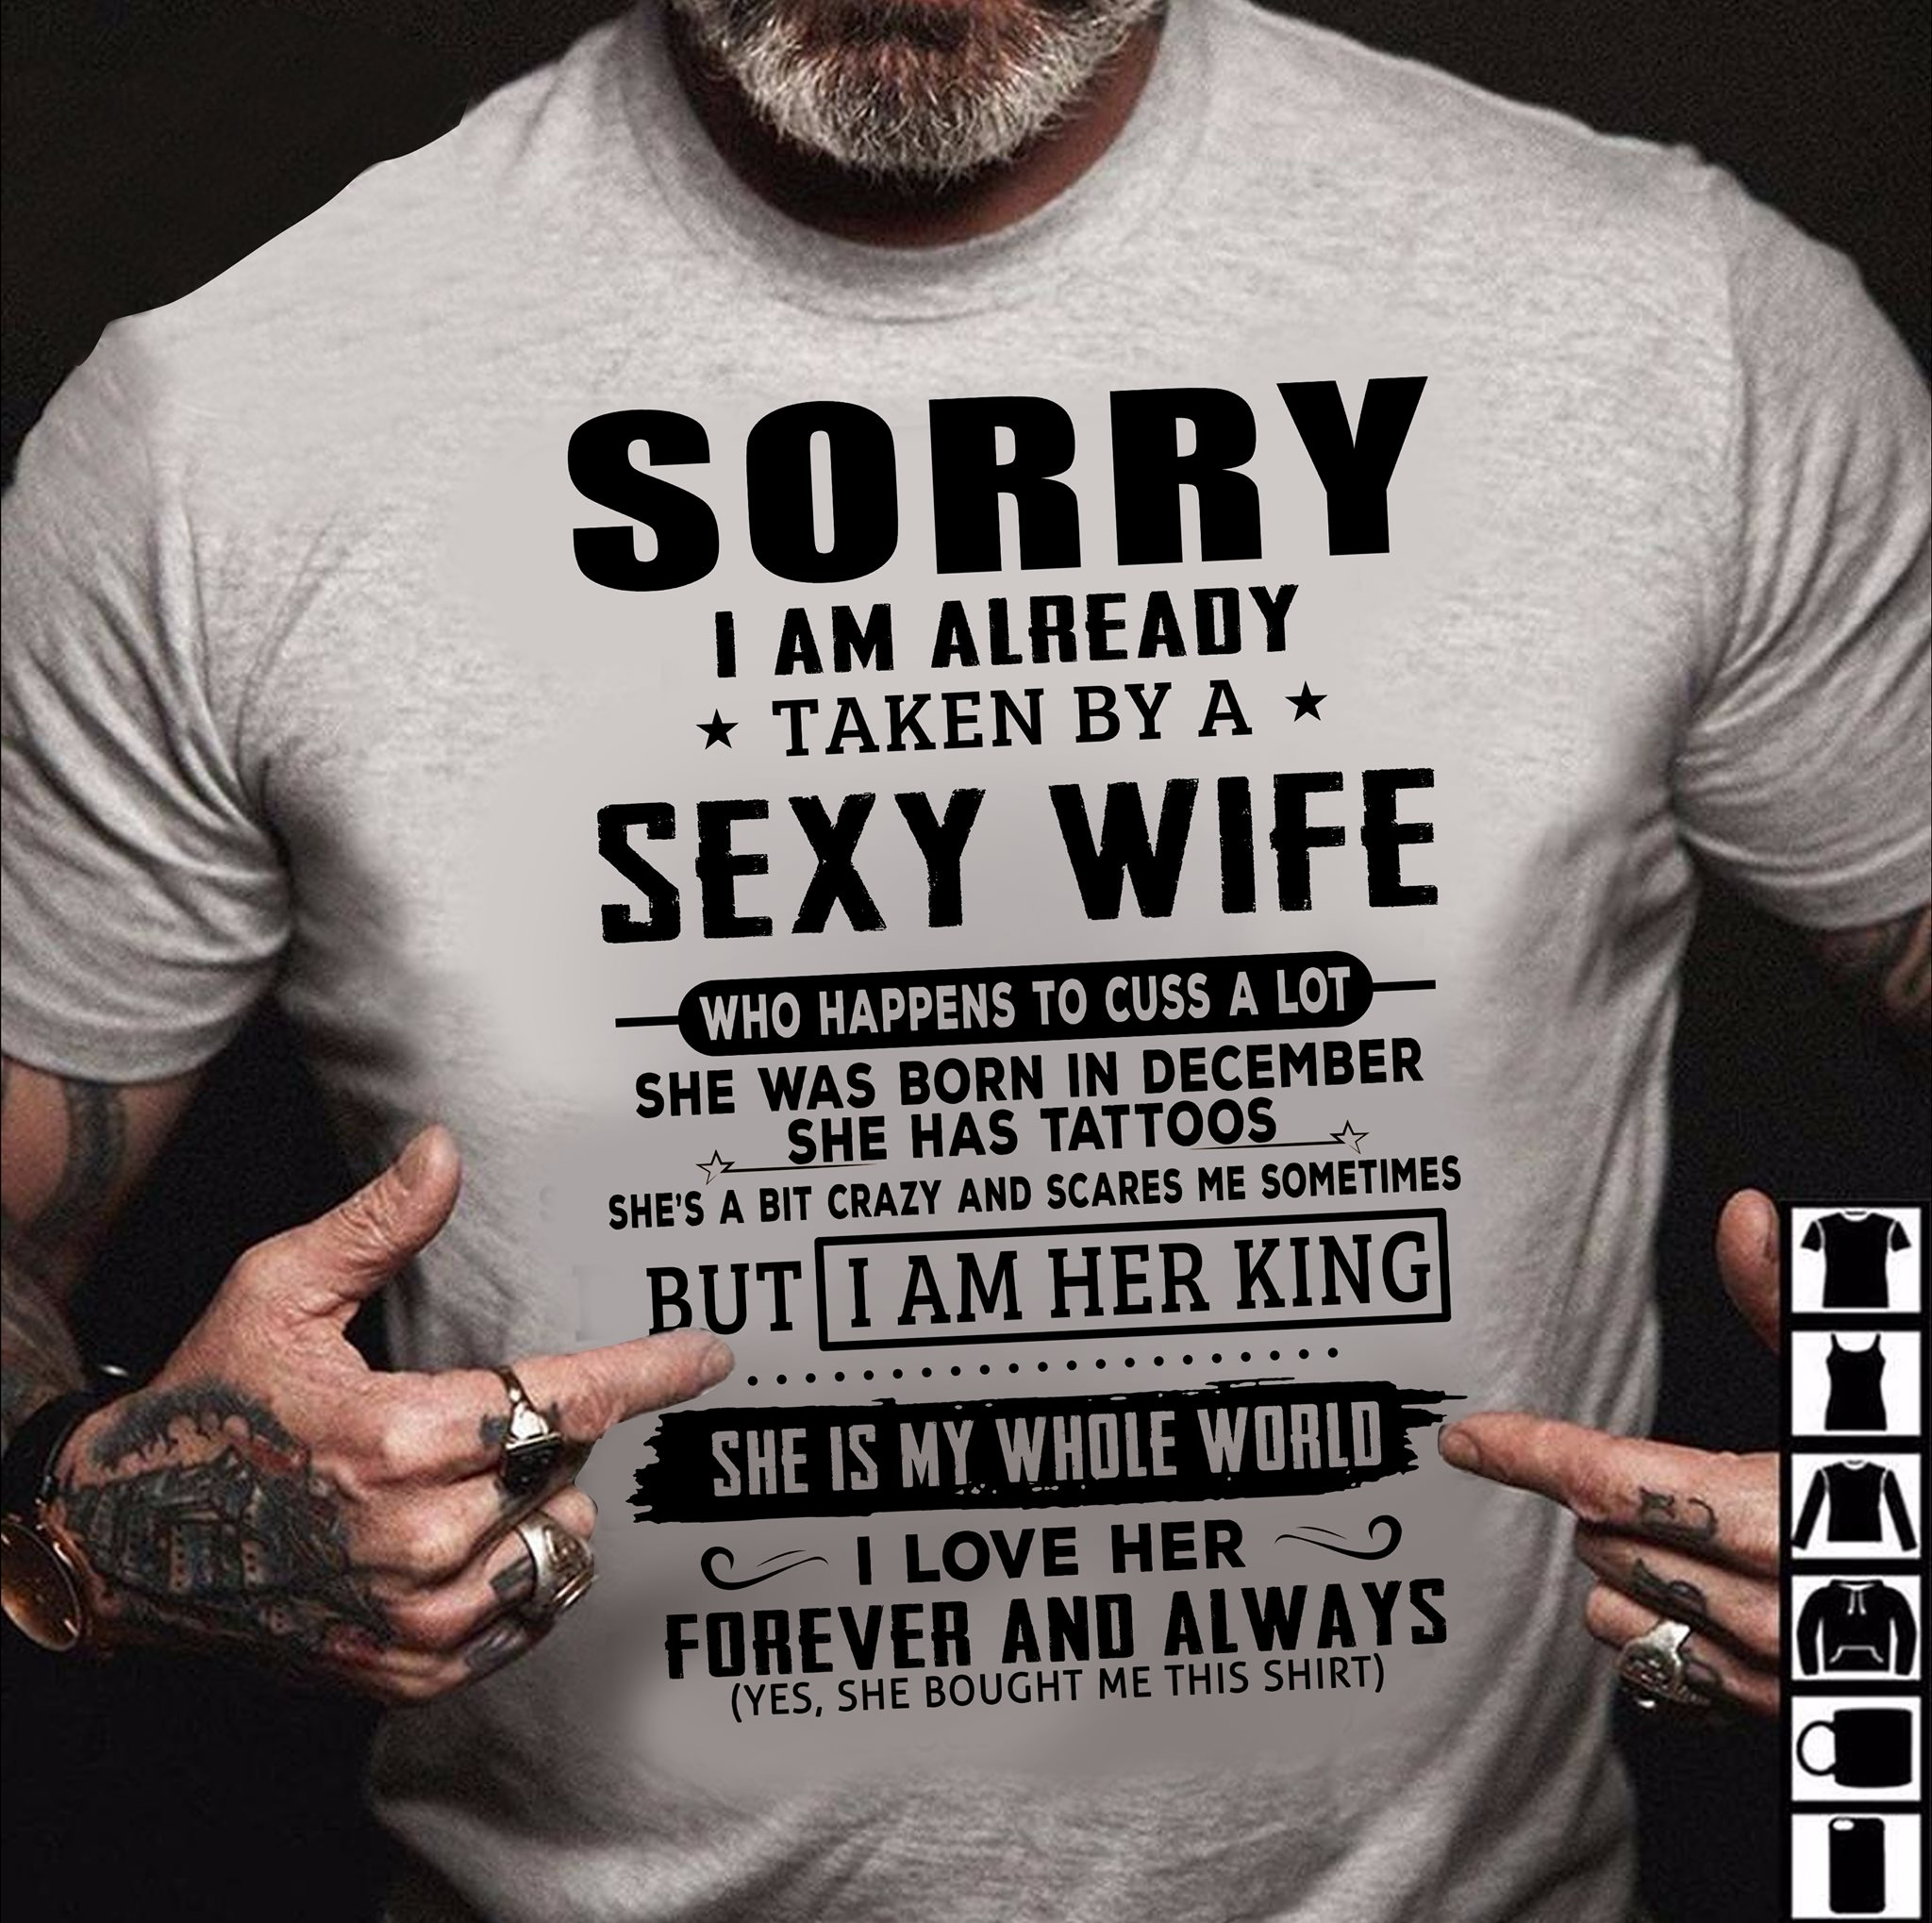 Sorry I am already taken by a sexy wife who happens to cuss a lot she was born in december she has tattoos shirt